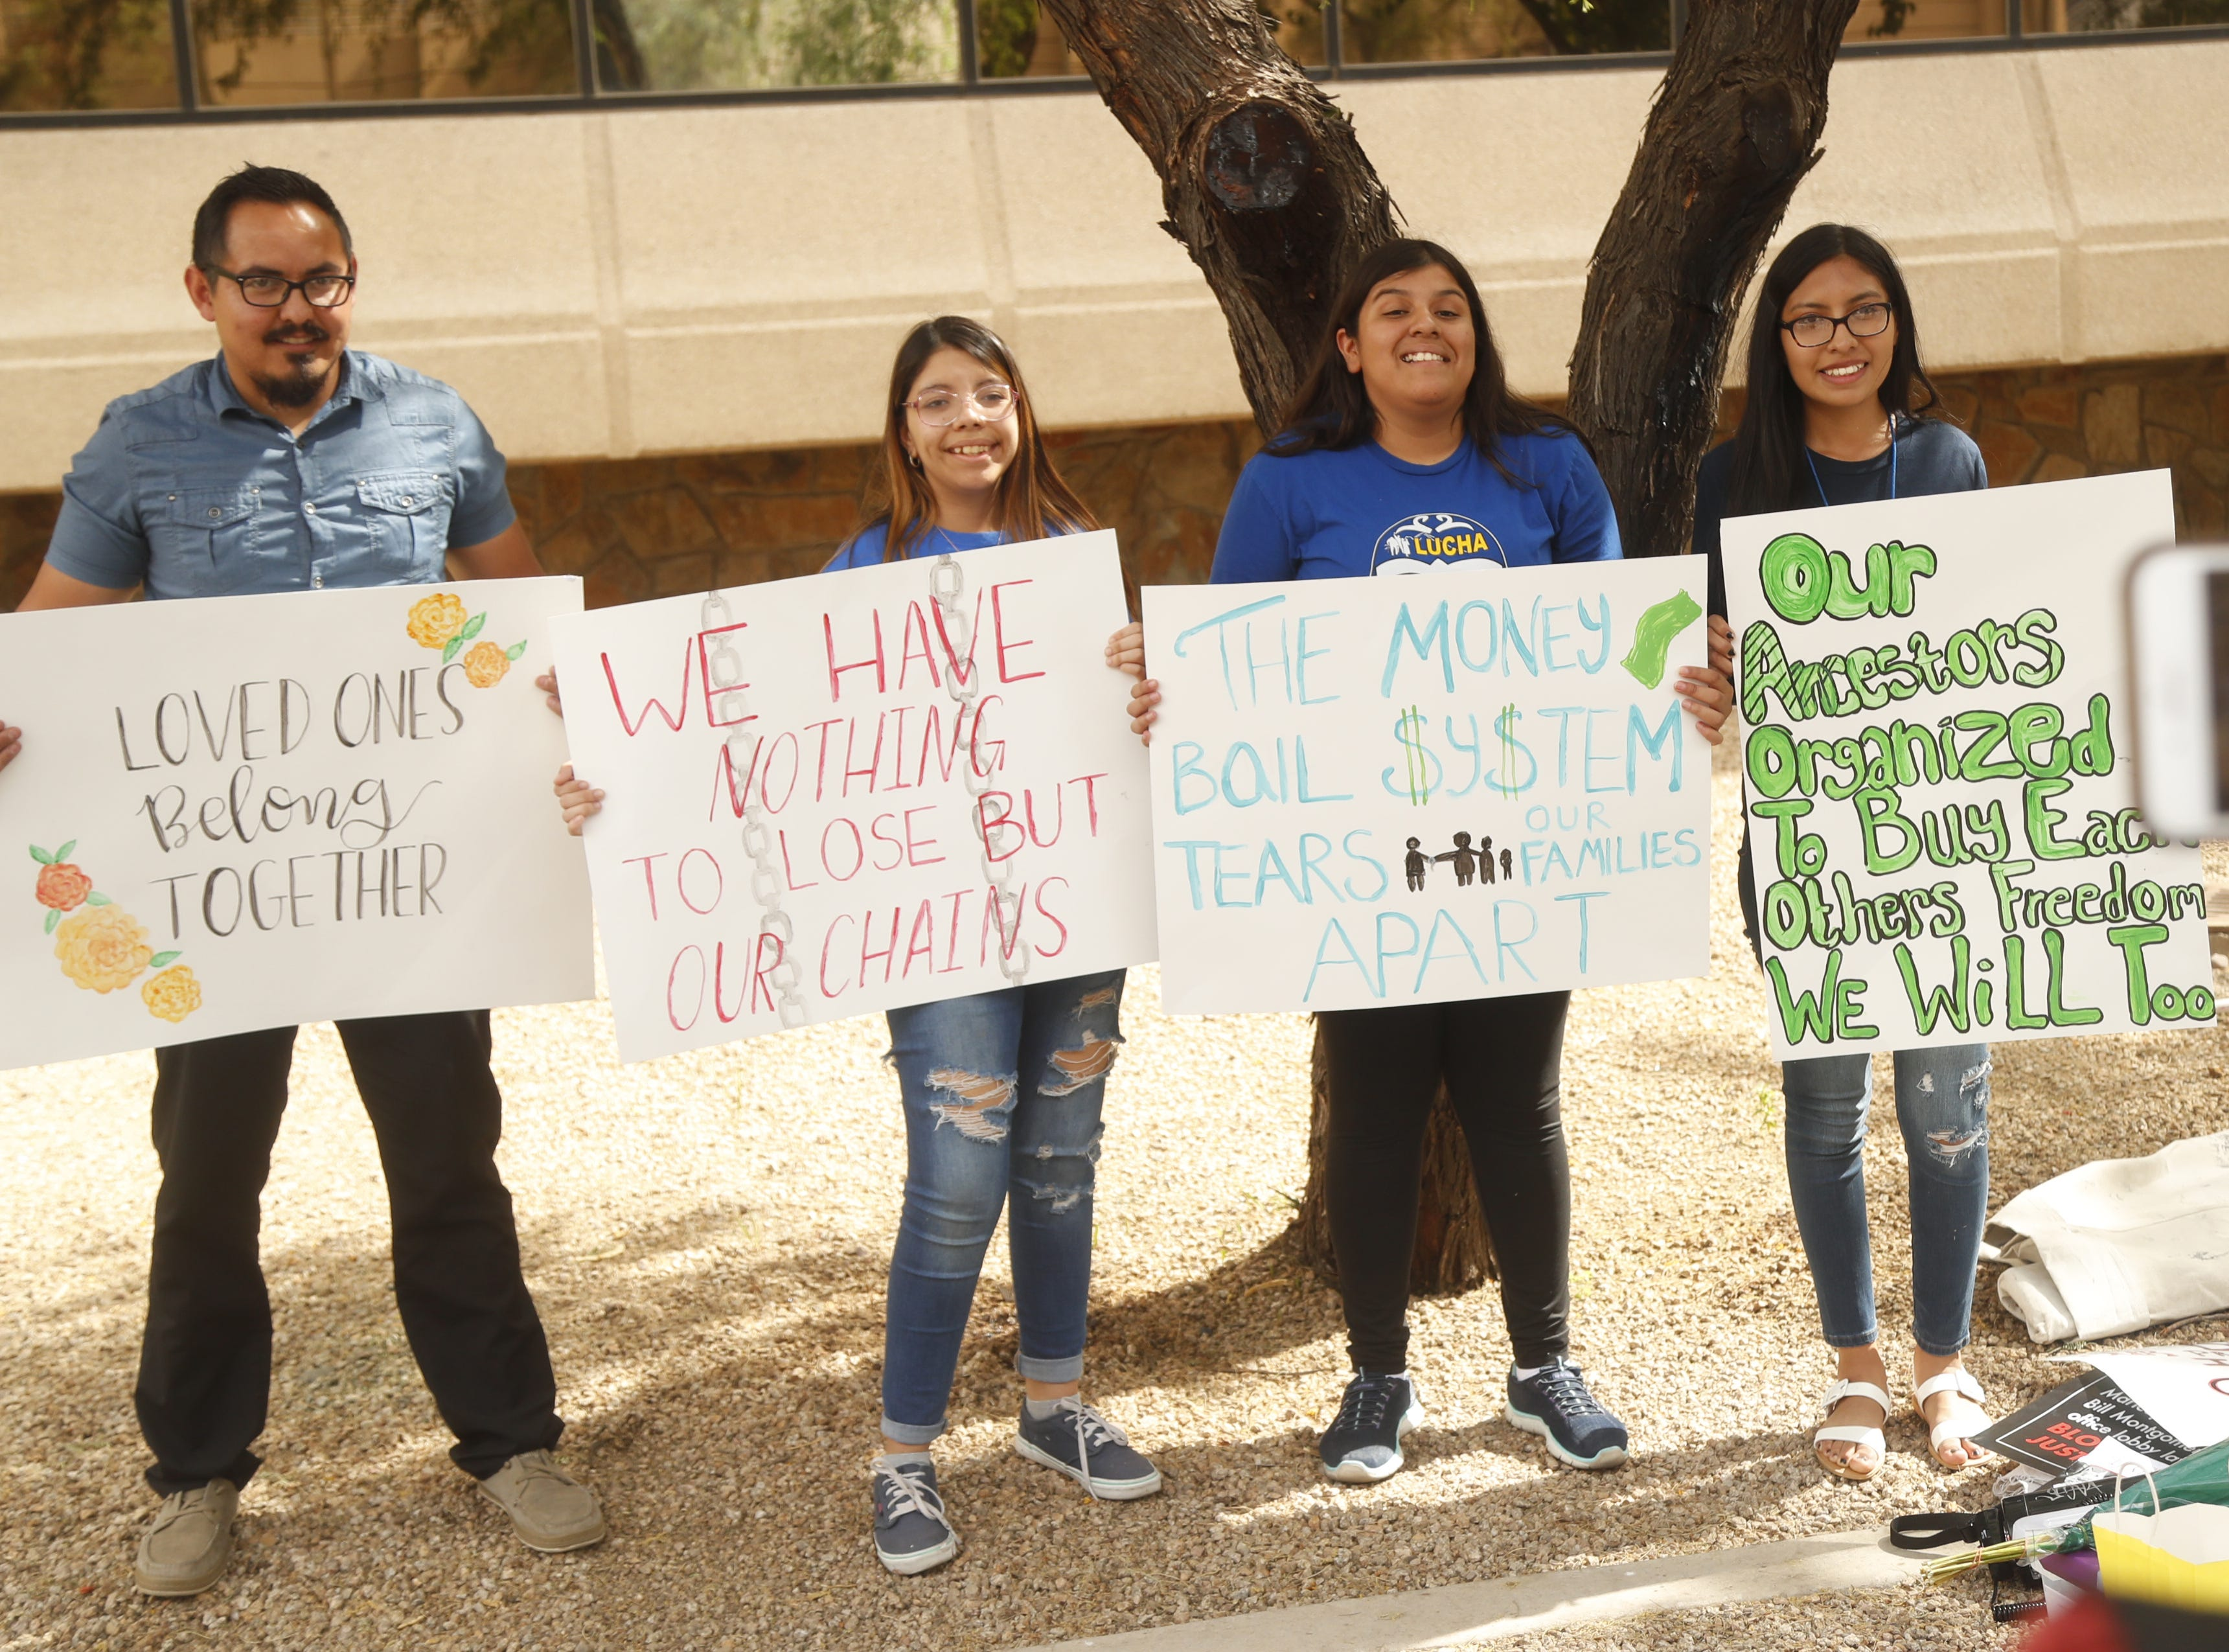 Aldo Gonzalez (L-R), Annette Alvarez, Ivonne Dominguez and Giovana Reyes hold signs during a protest against cash bail at the Maricopa County Attorney's office in Phoenix on May 9, 2019.